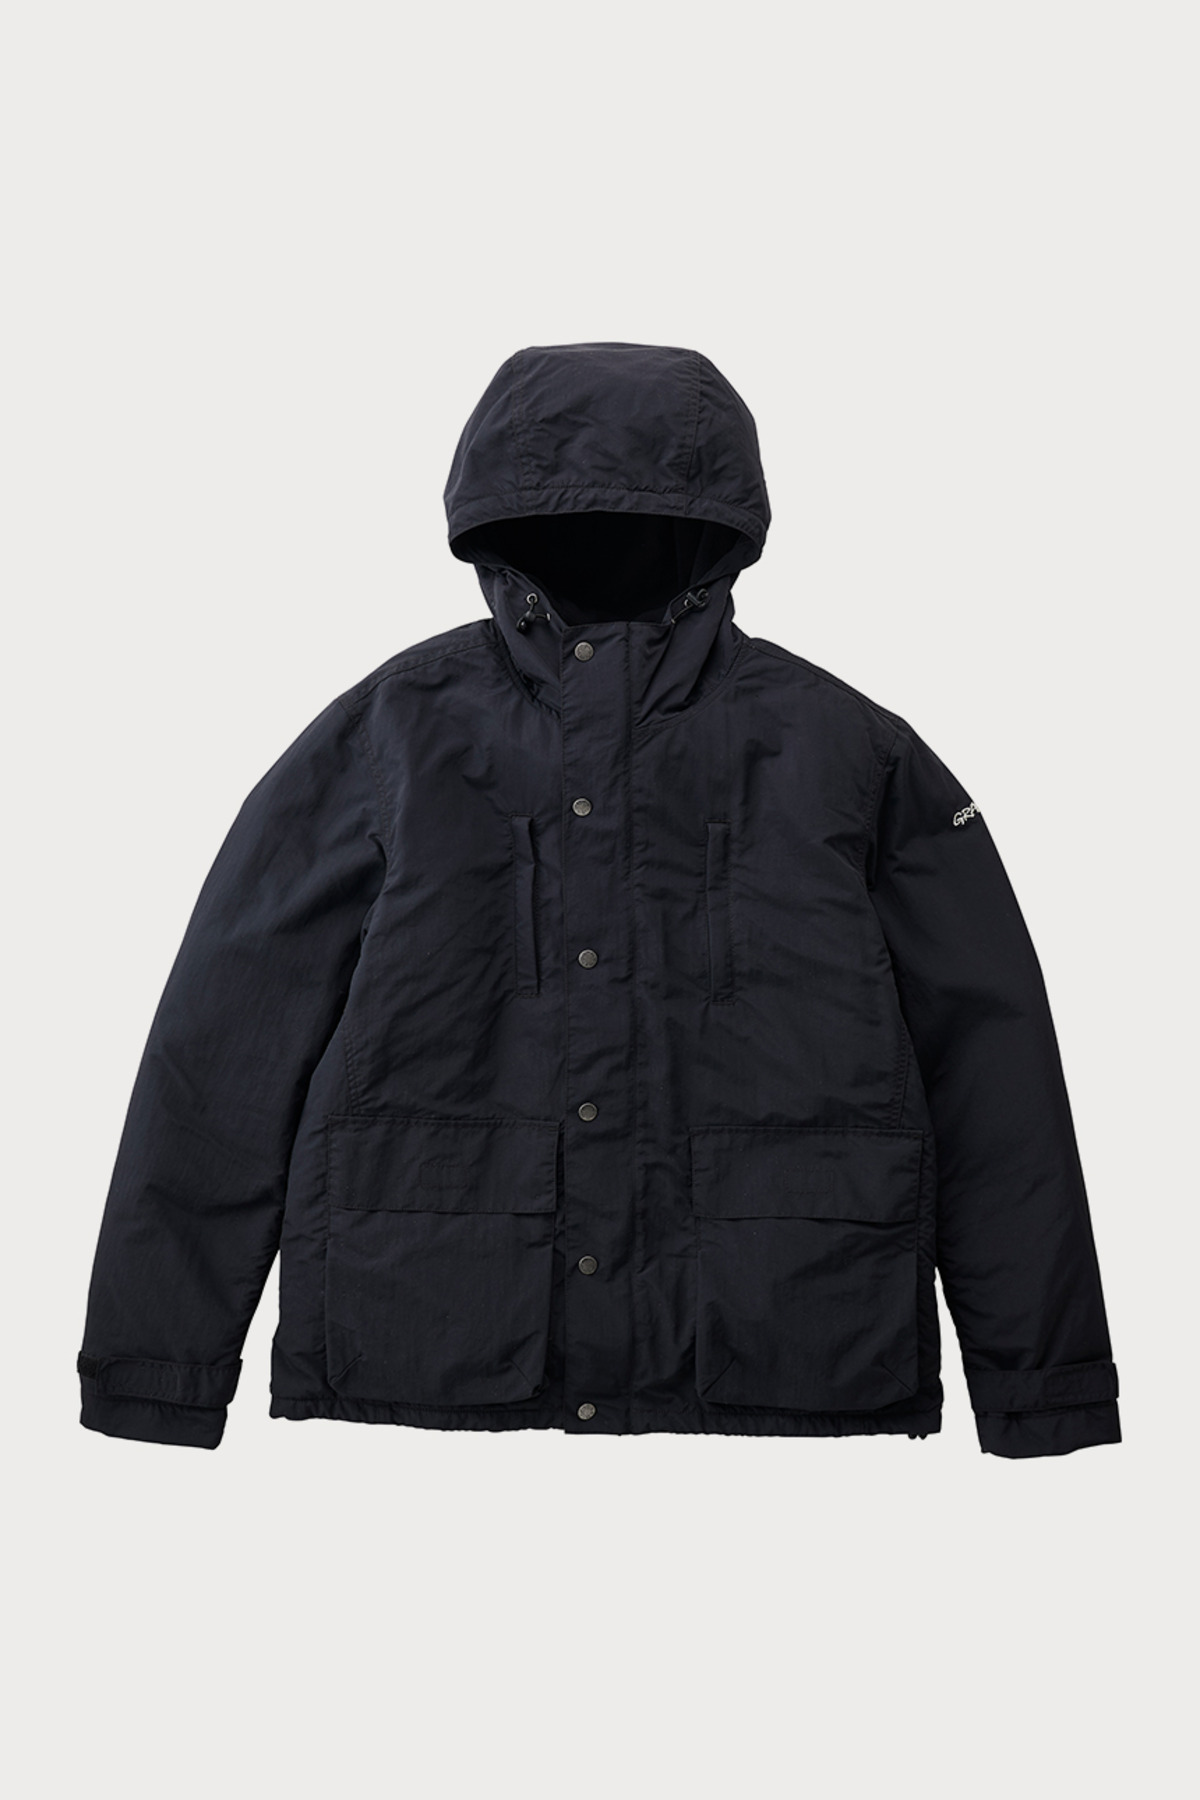 SHELL MOUNTAIN PARKA BLACK